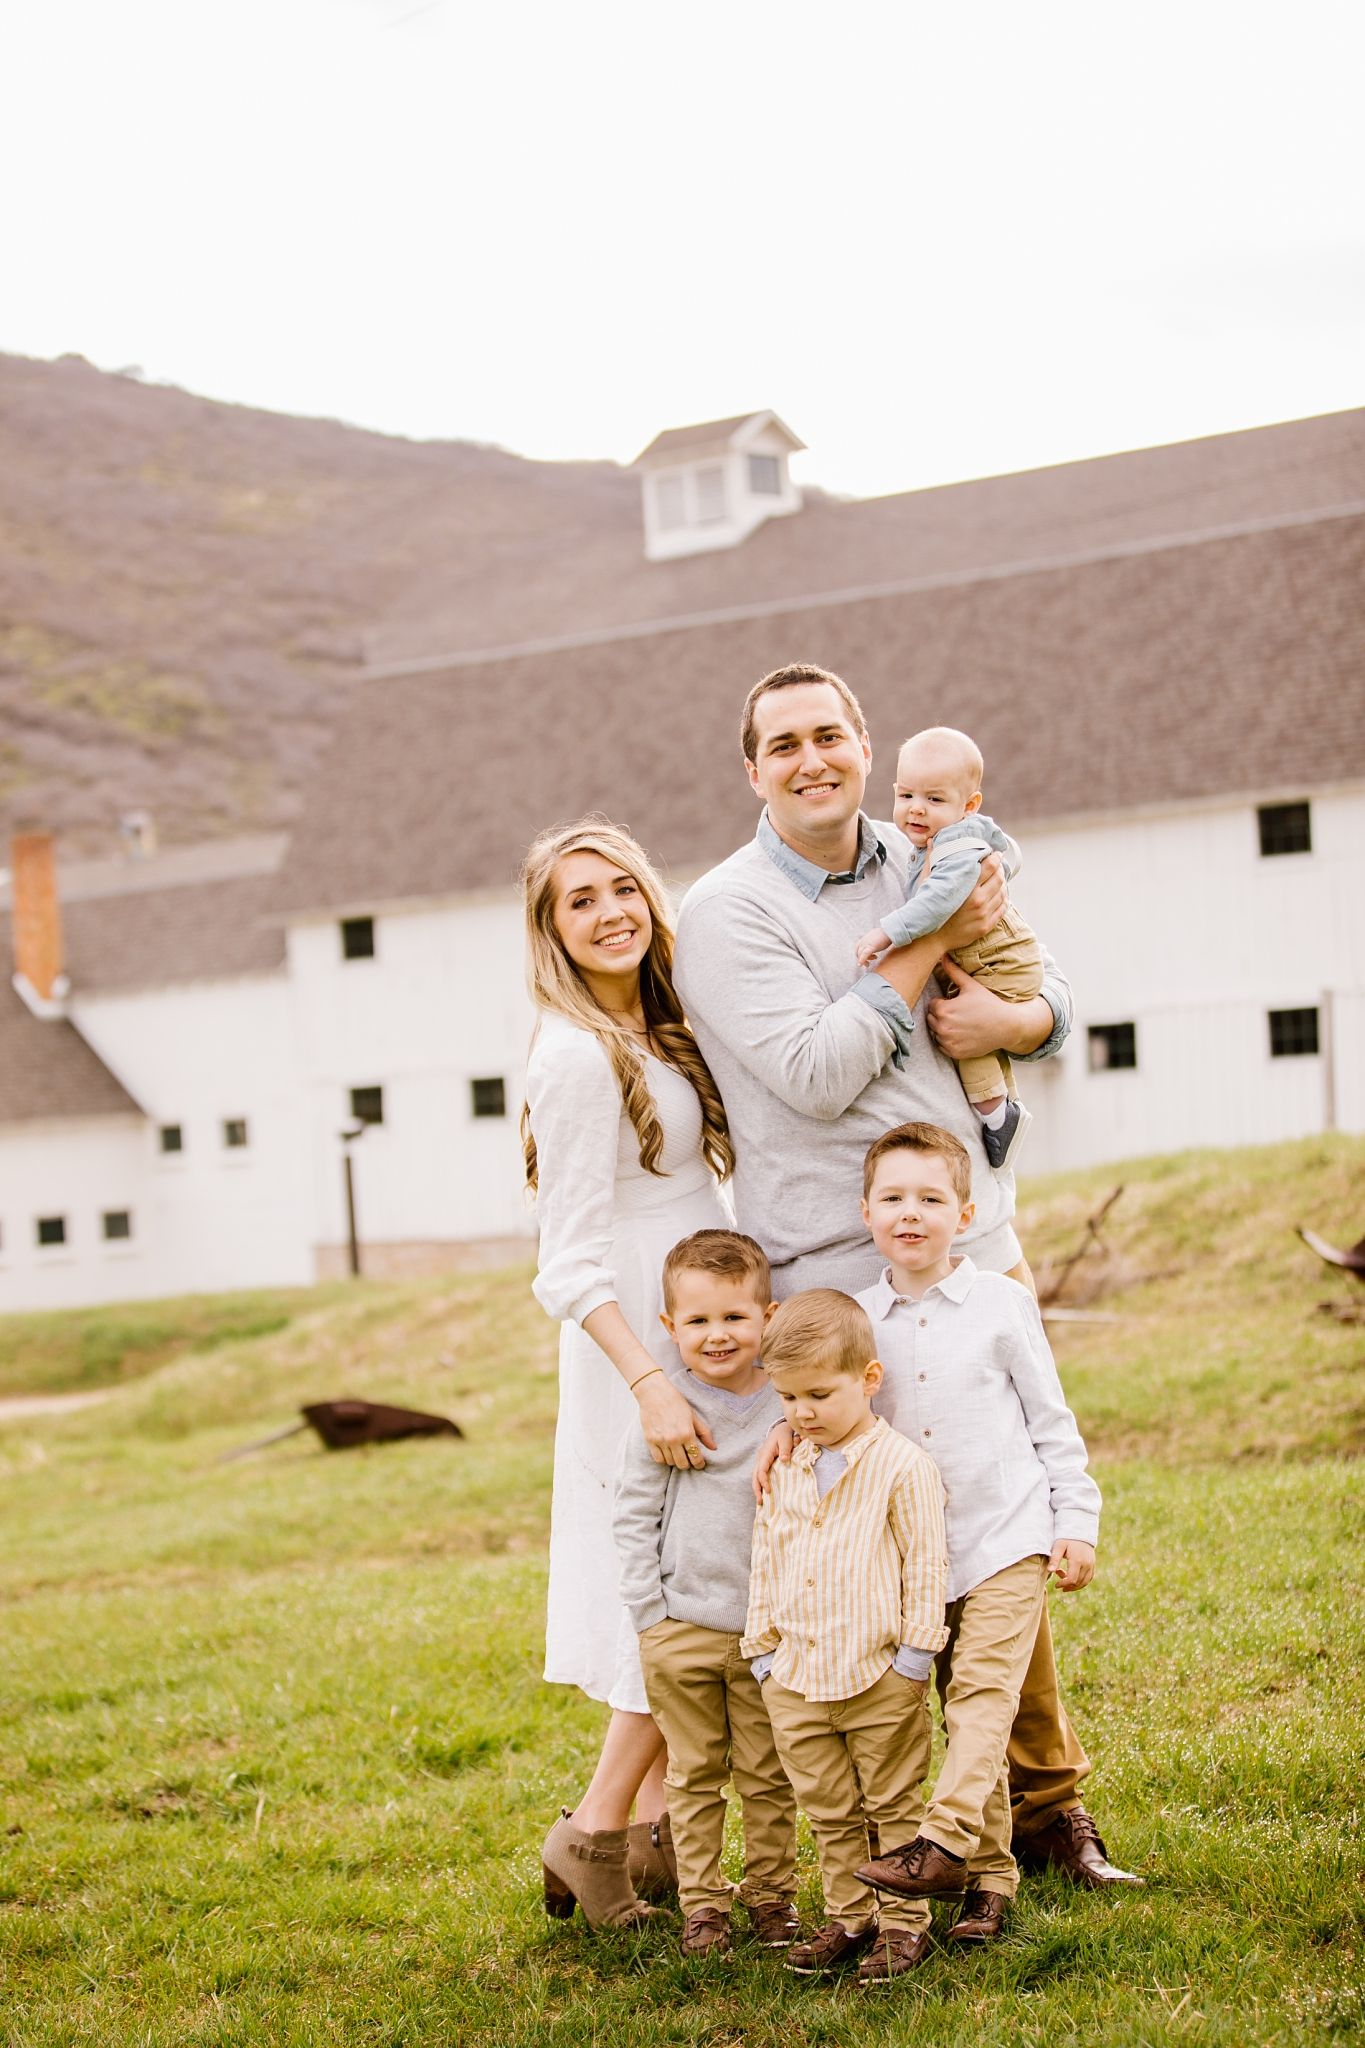 Extended Family Session! | Family Photos at McPolin Farm in Park City, Utah by Lizzie B Imagery. Utah Family and Wedding Photographer. Contact us to schedule a session for your family! #extendedfamilyphotography